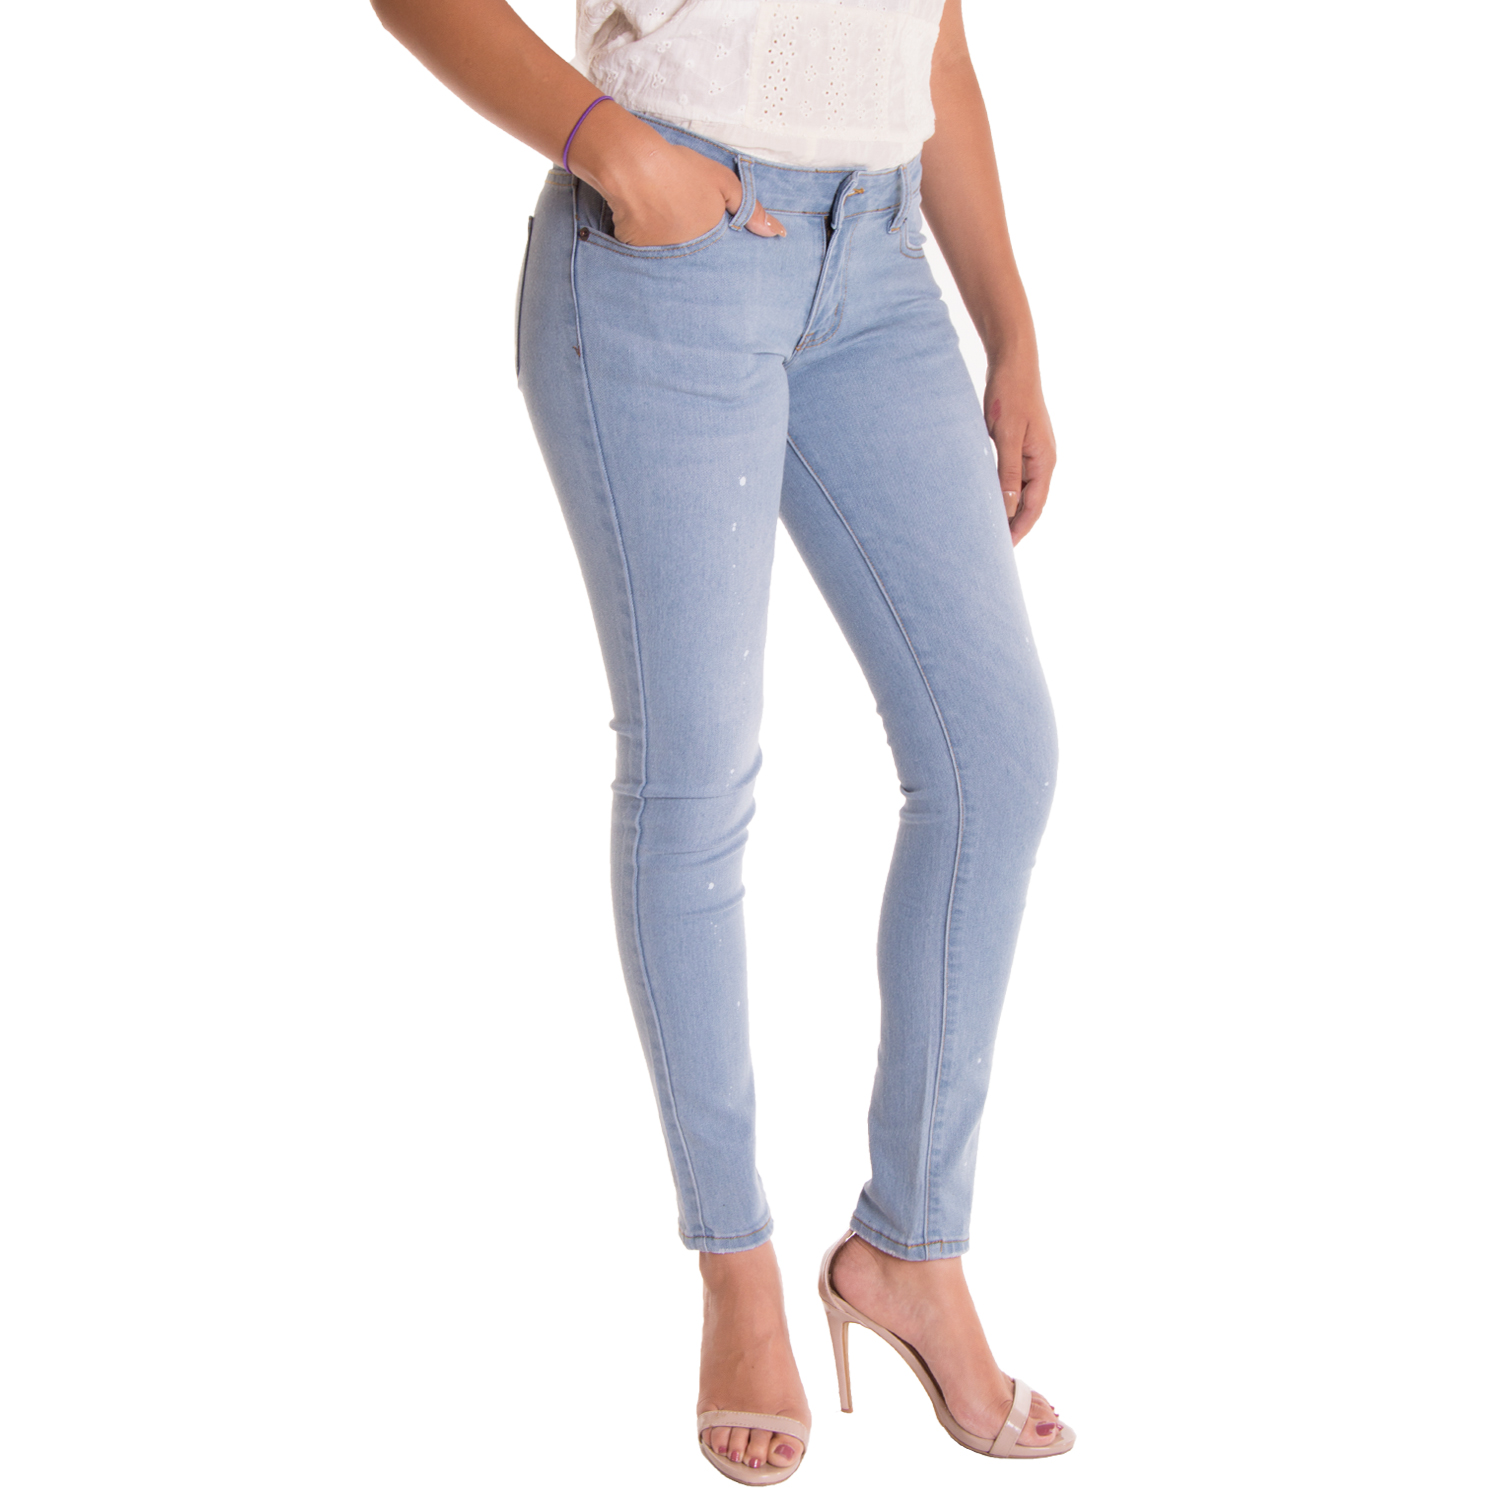 Alta Womenu0026#39;s Skinny Jeans Designer Fashion Stretch Pants Paint Splash Denim | eBay